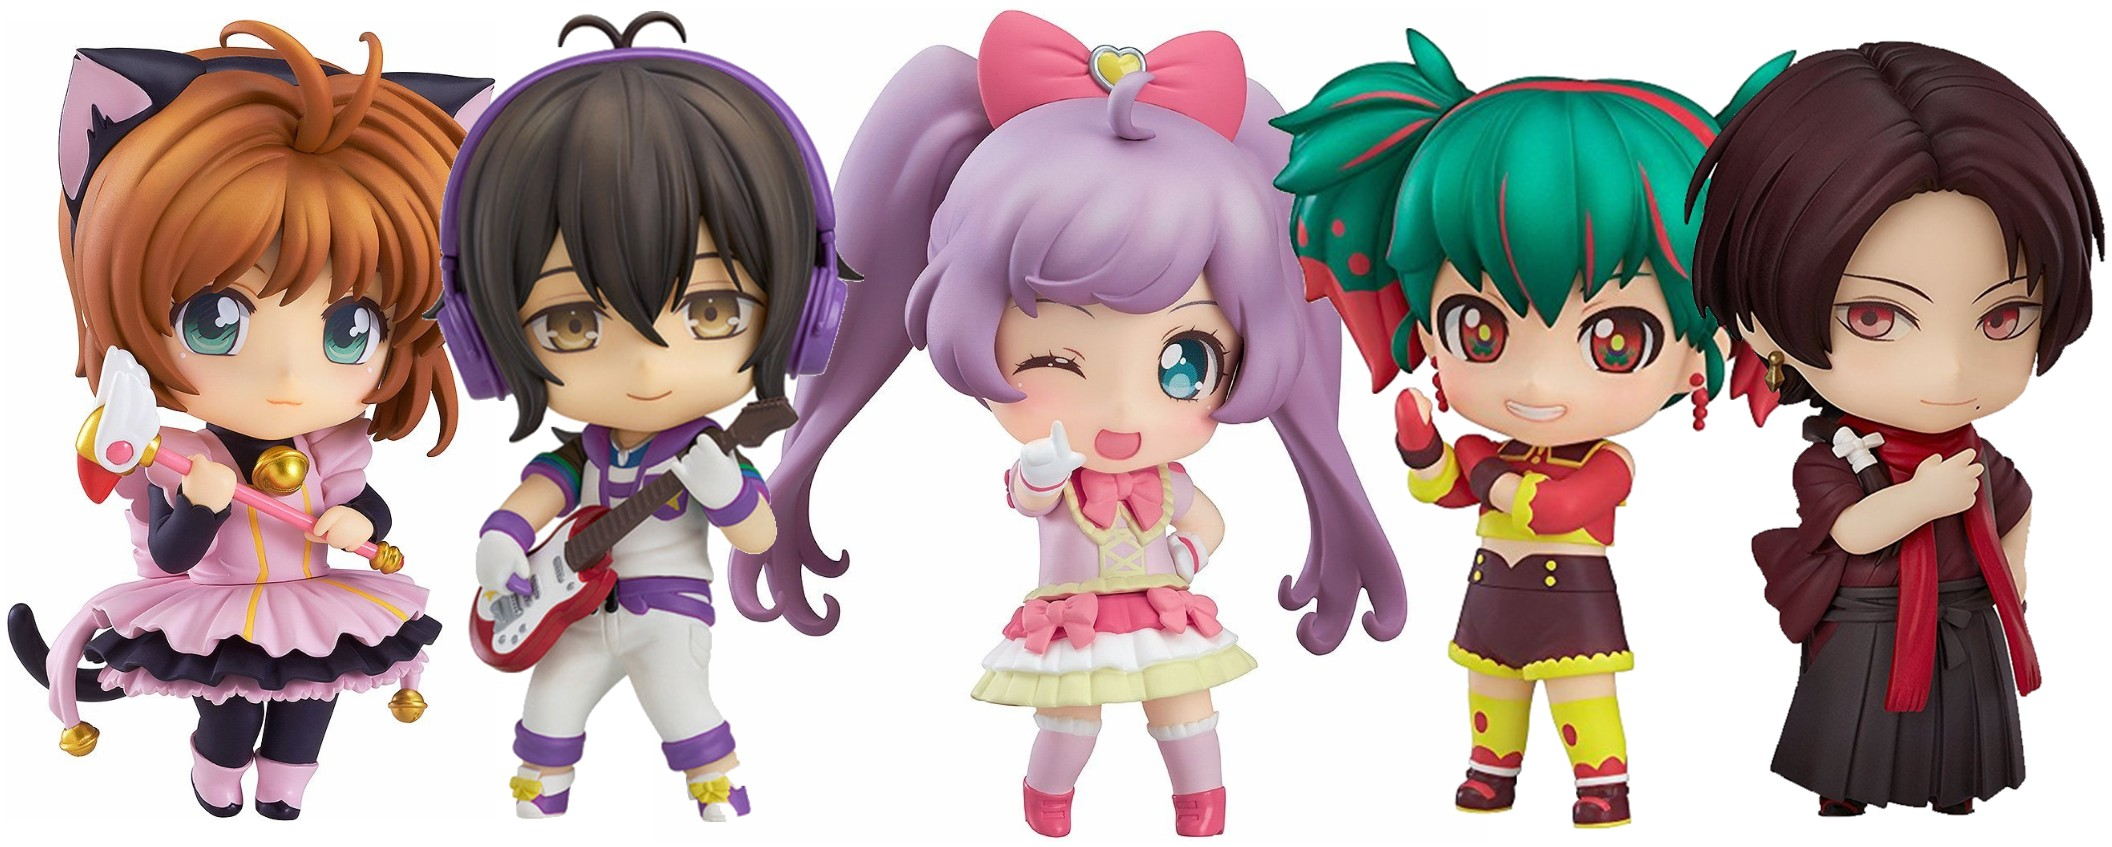 Nendoroid Co-de Figures